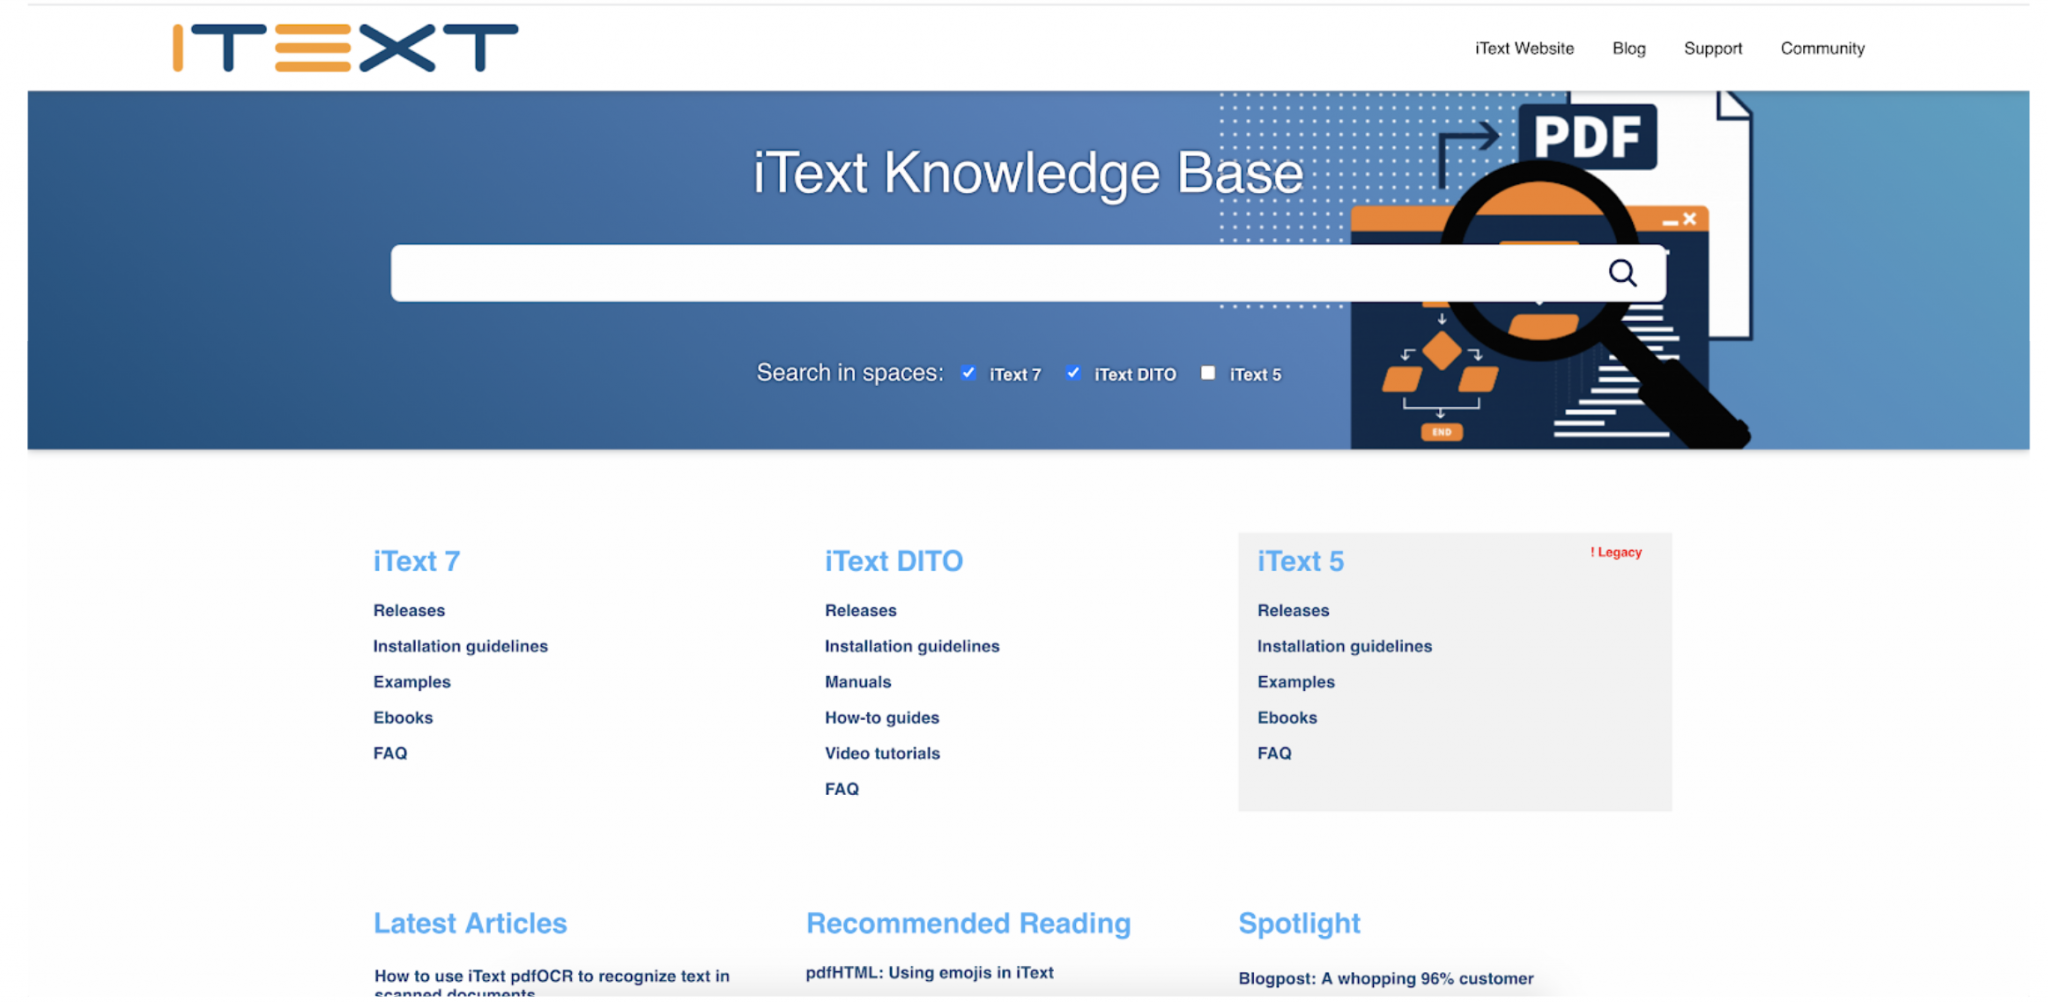 Complete integration of a new, customized knowledge base and support desk an innovative company specialized in developing PDF software.